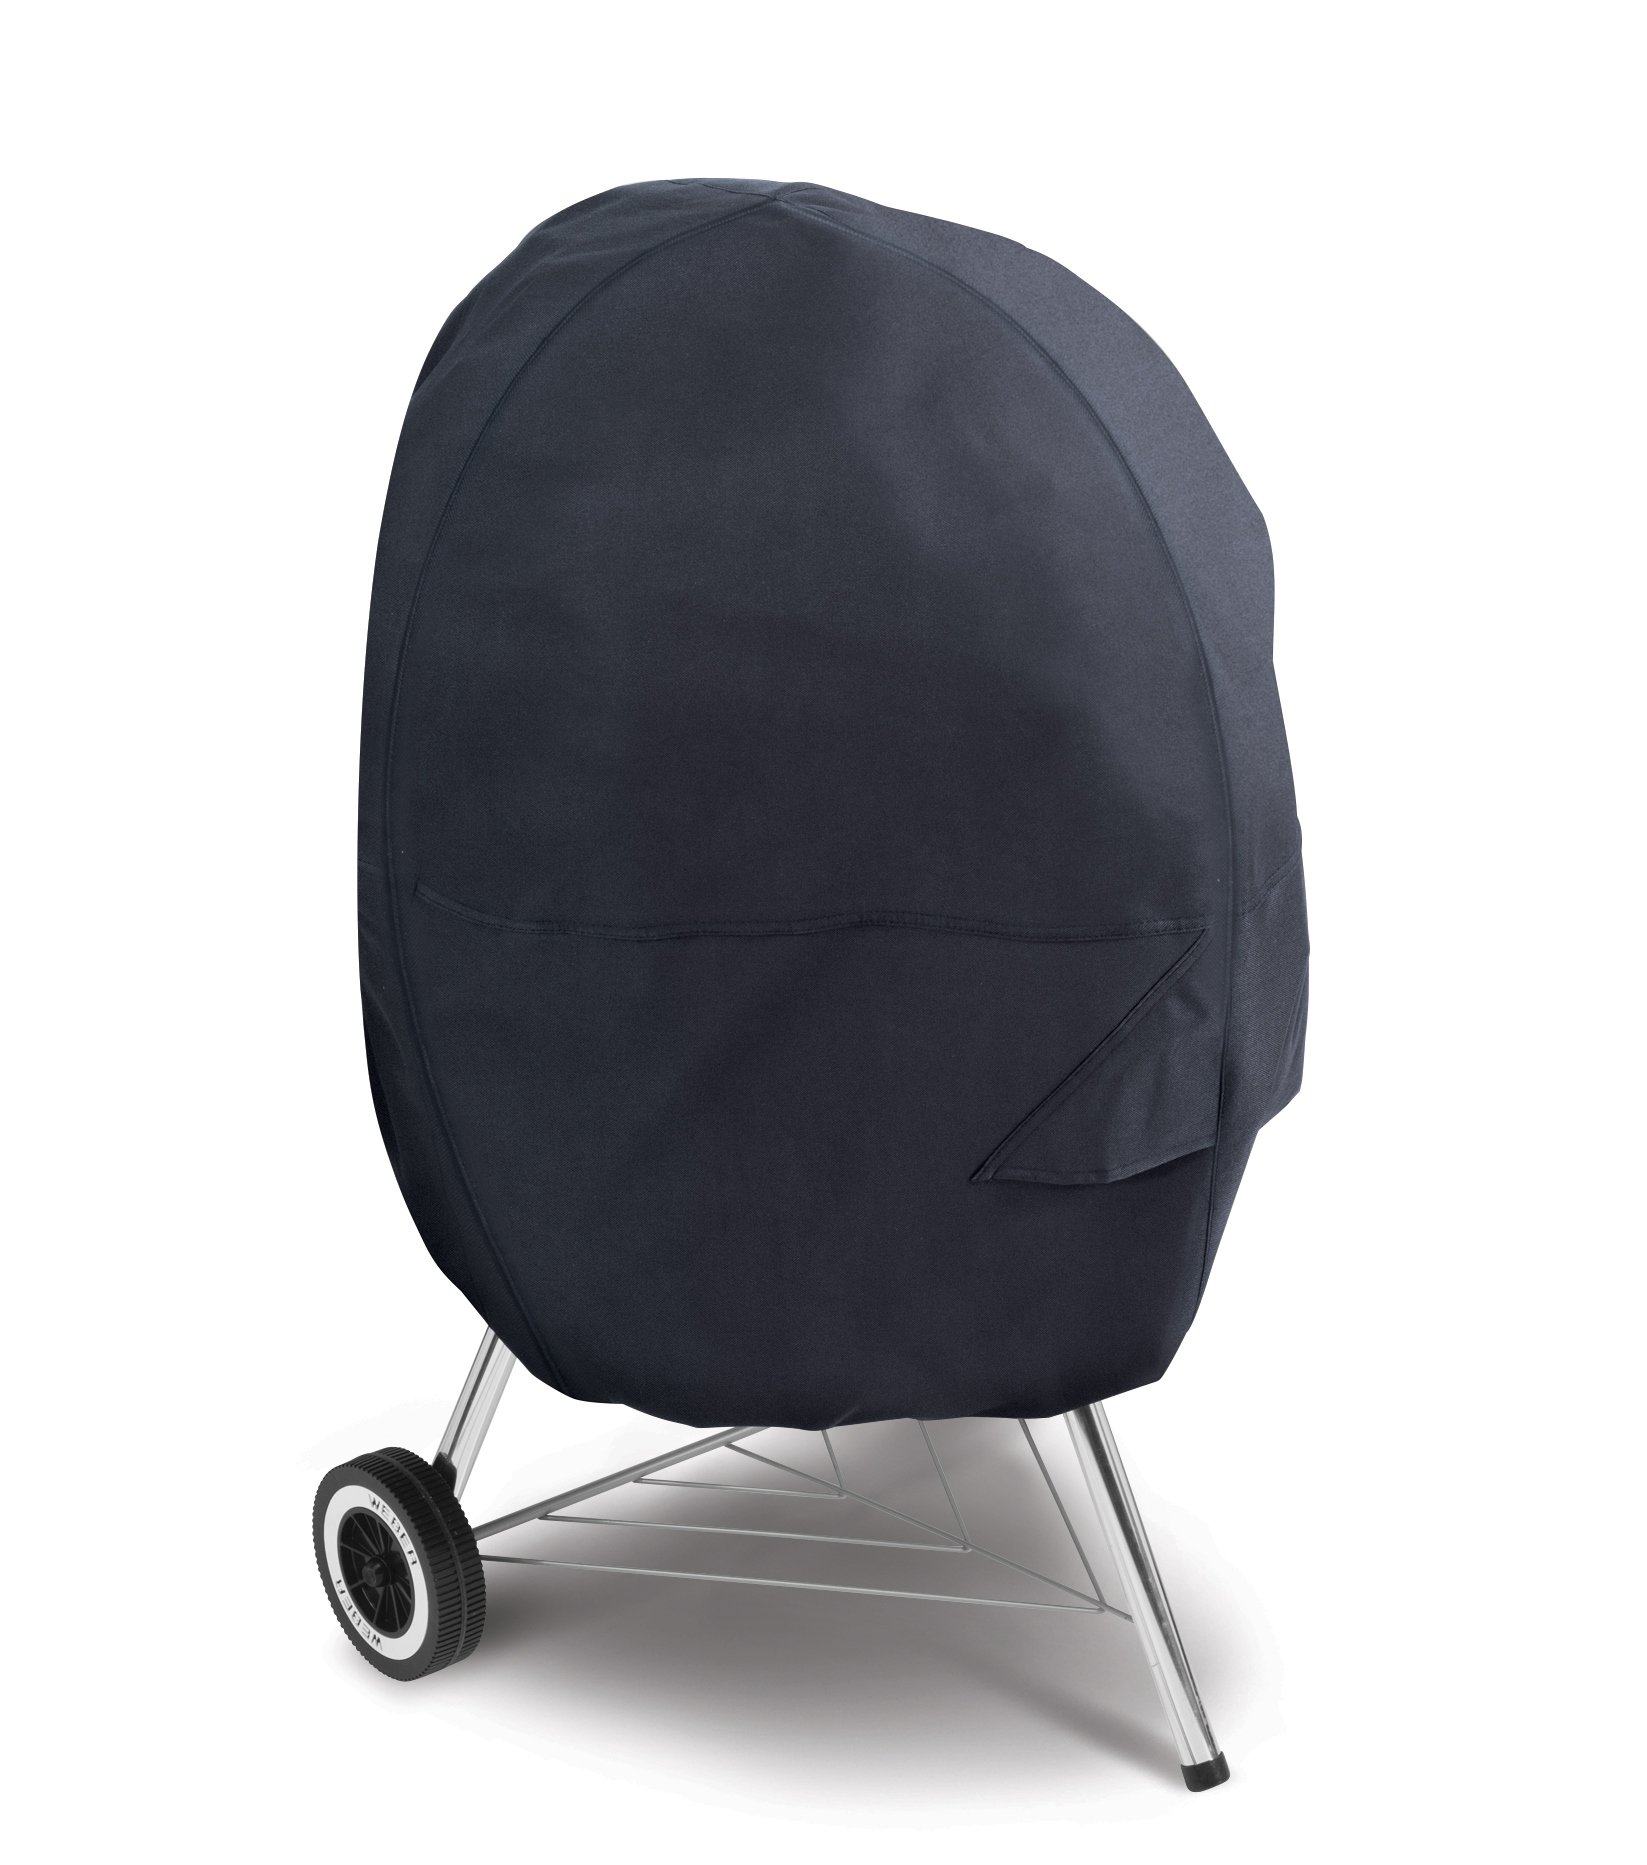 Classic Accessories Water-Resistant 26.5 Inch Kettle BBQ Grill Cover